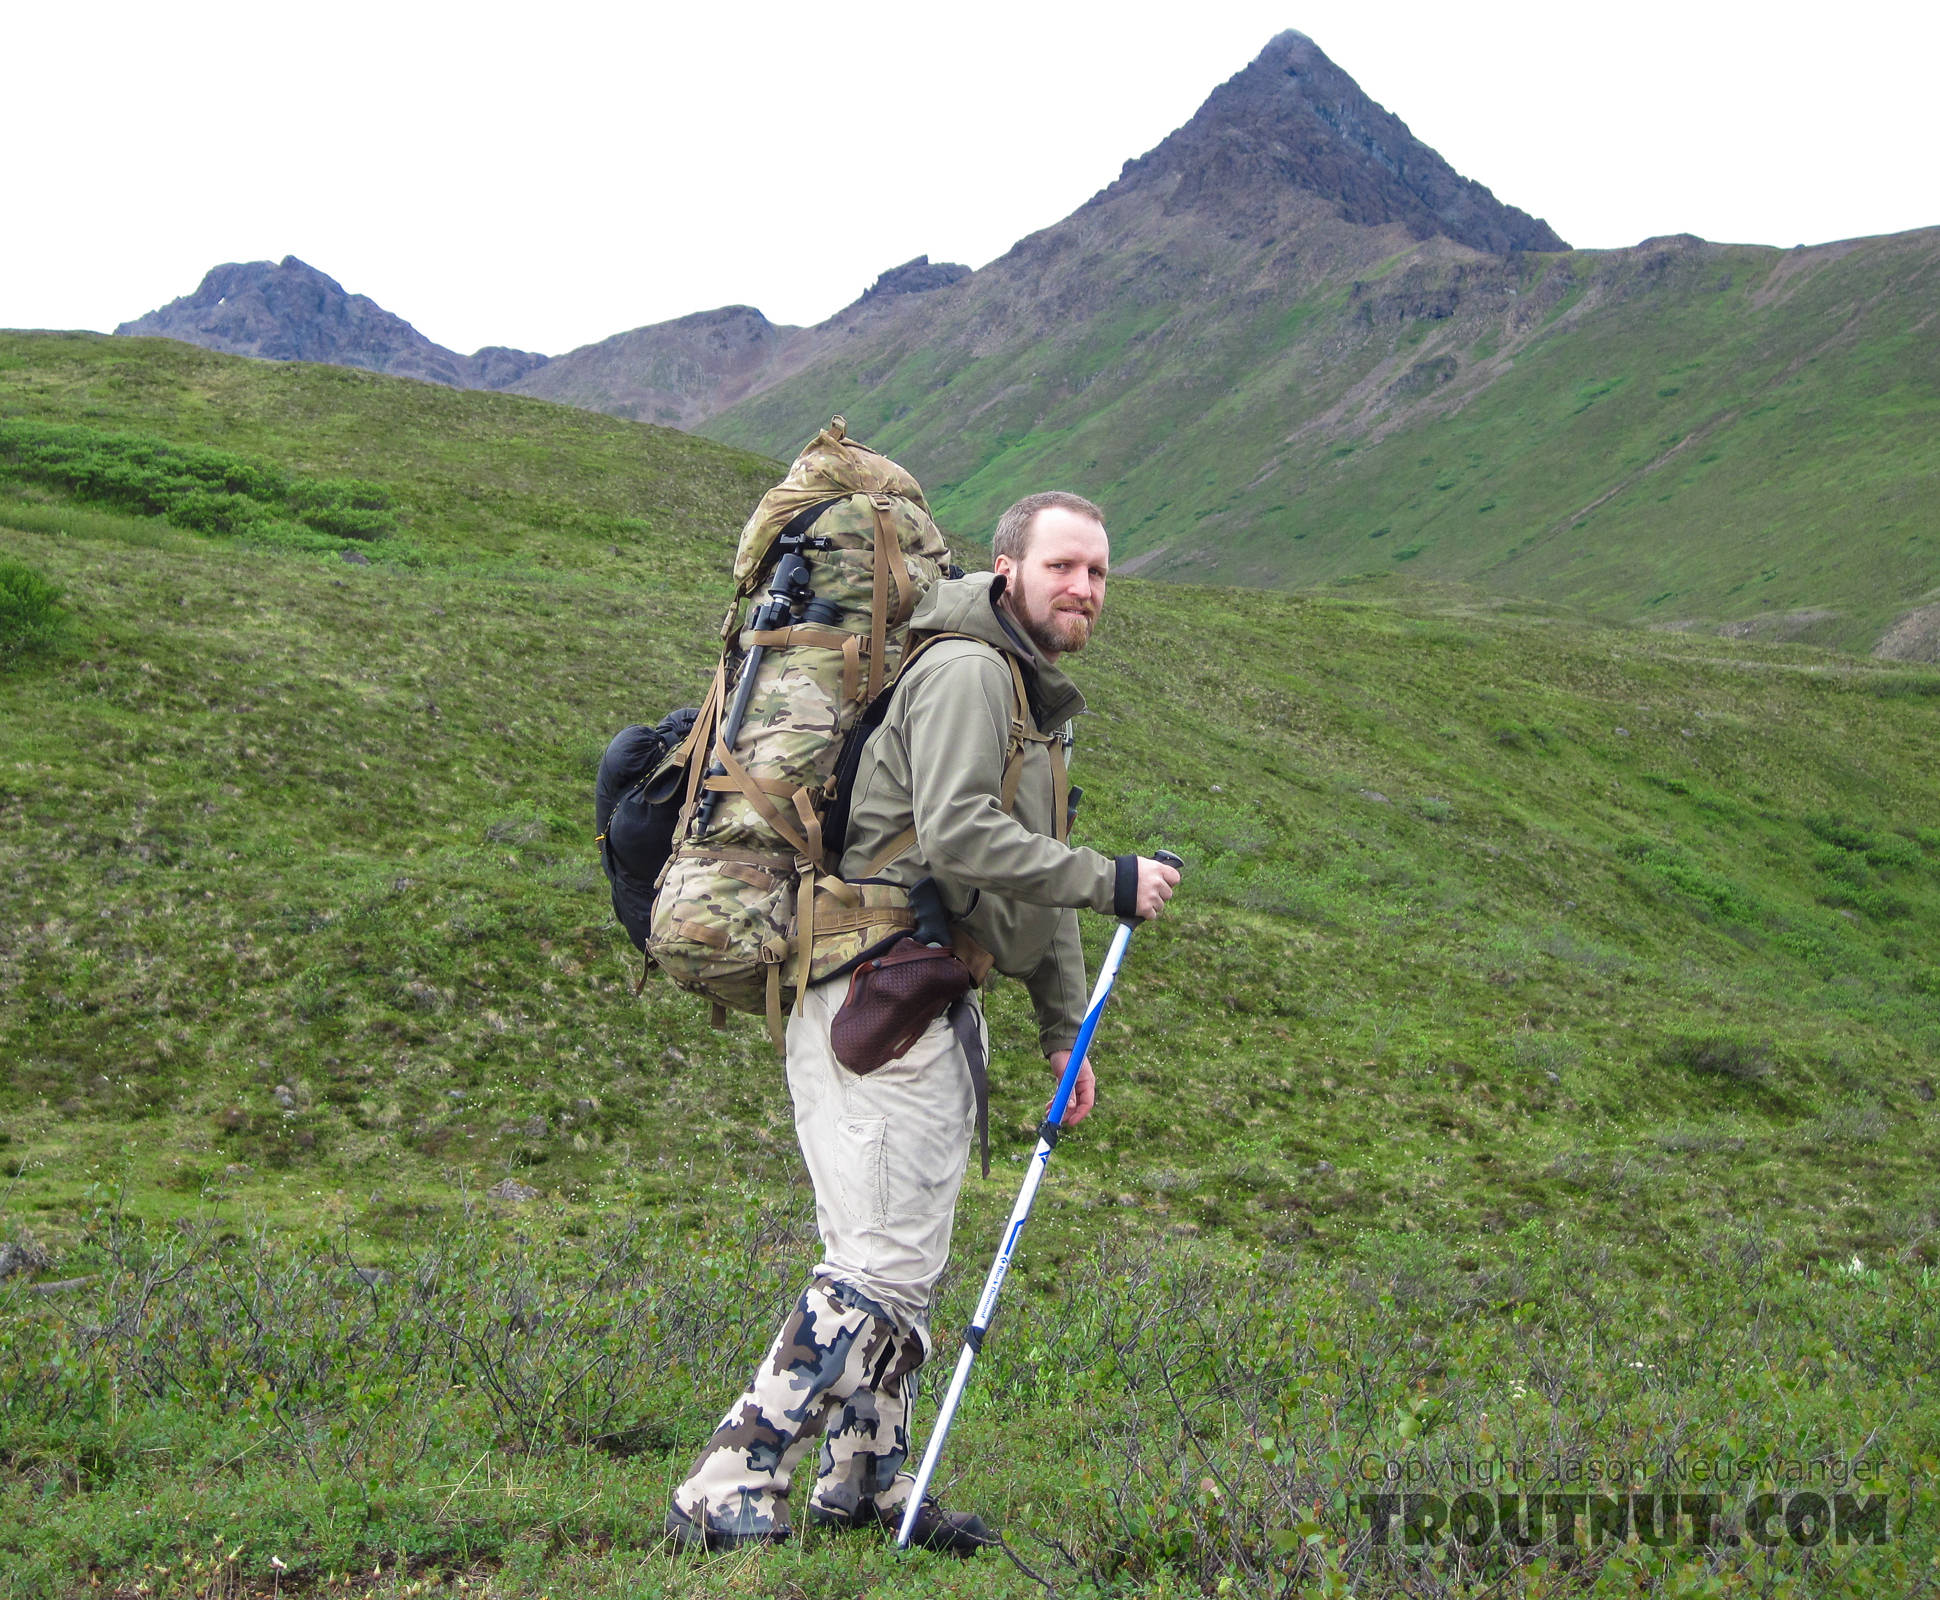 Carrying a heavy load. From Clearwater Mountains in Alaska.